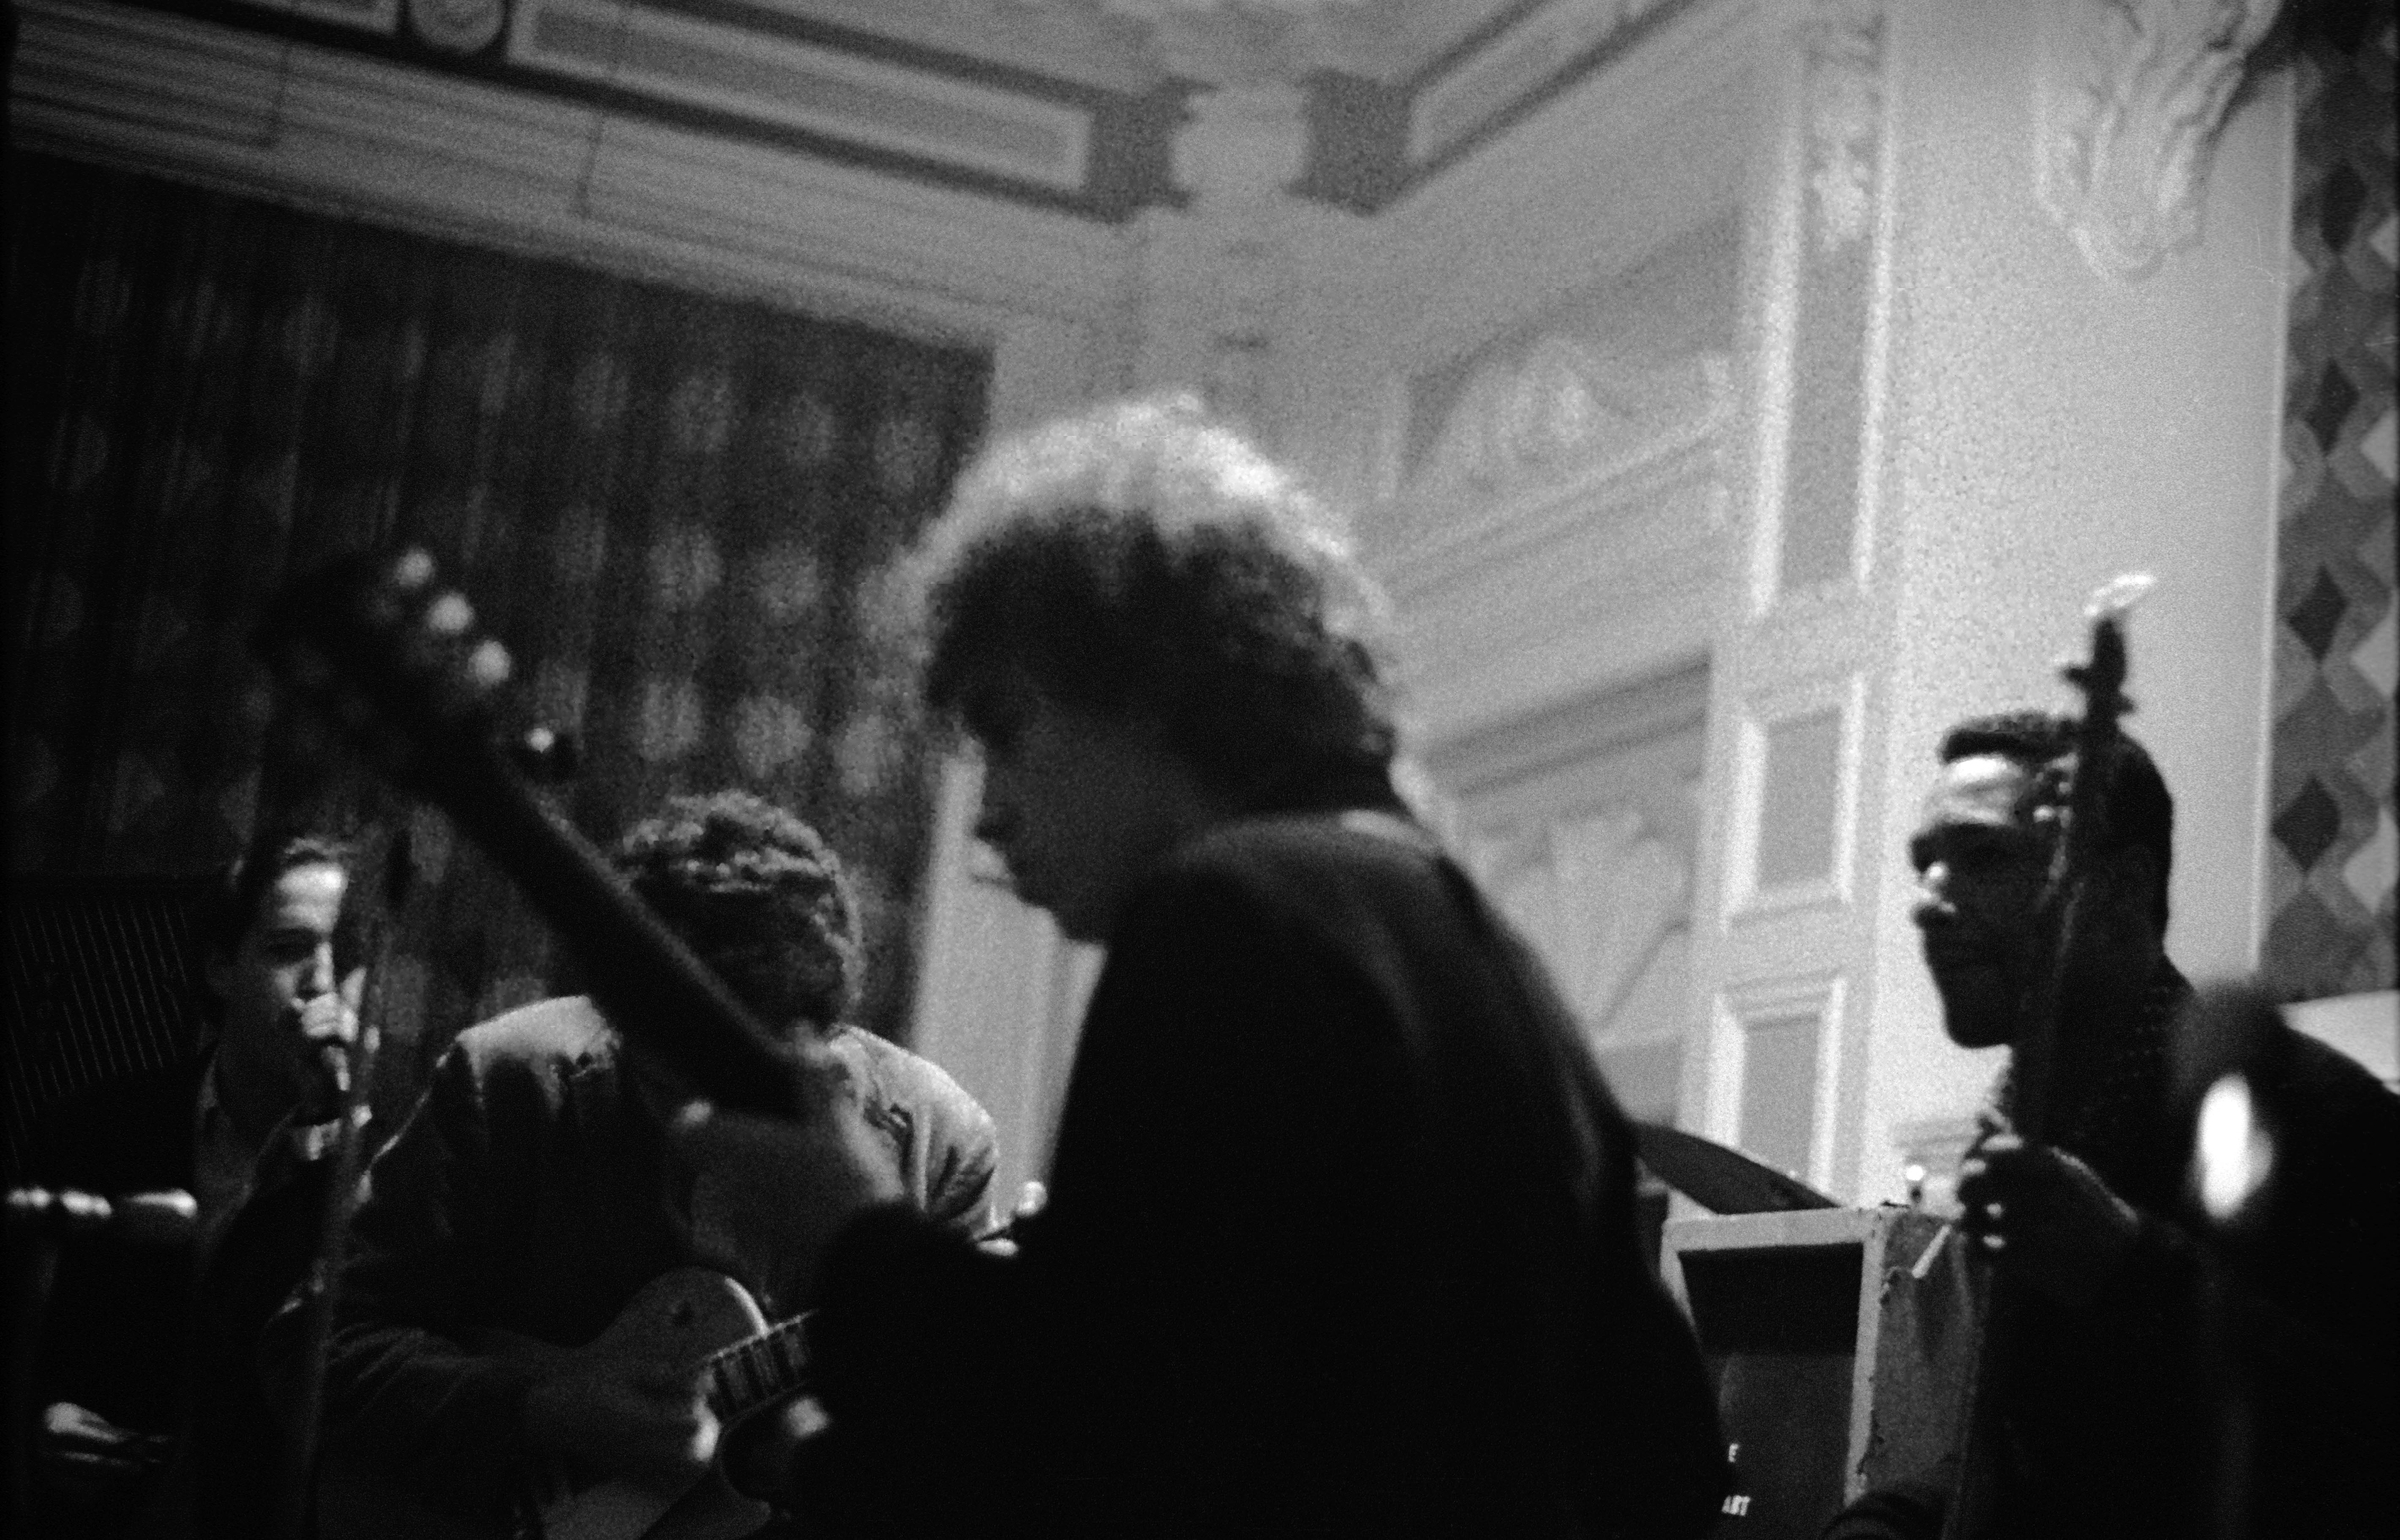 Paul Butterfield Blues Band at Lewes Town Hall in 1966